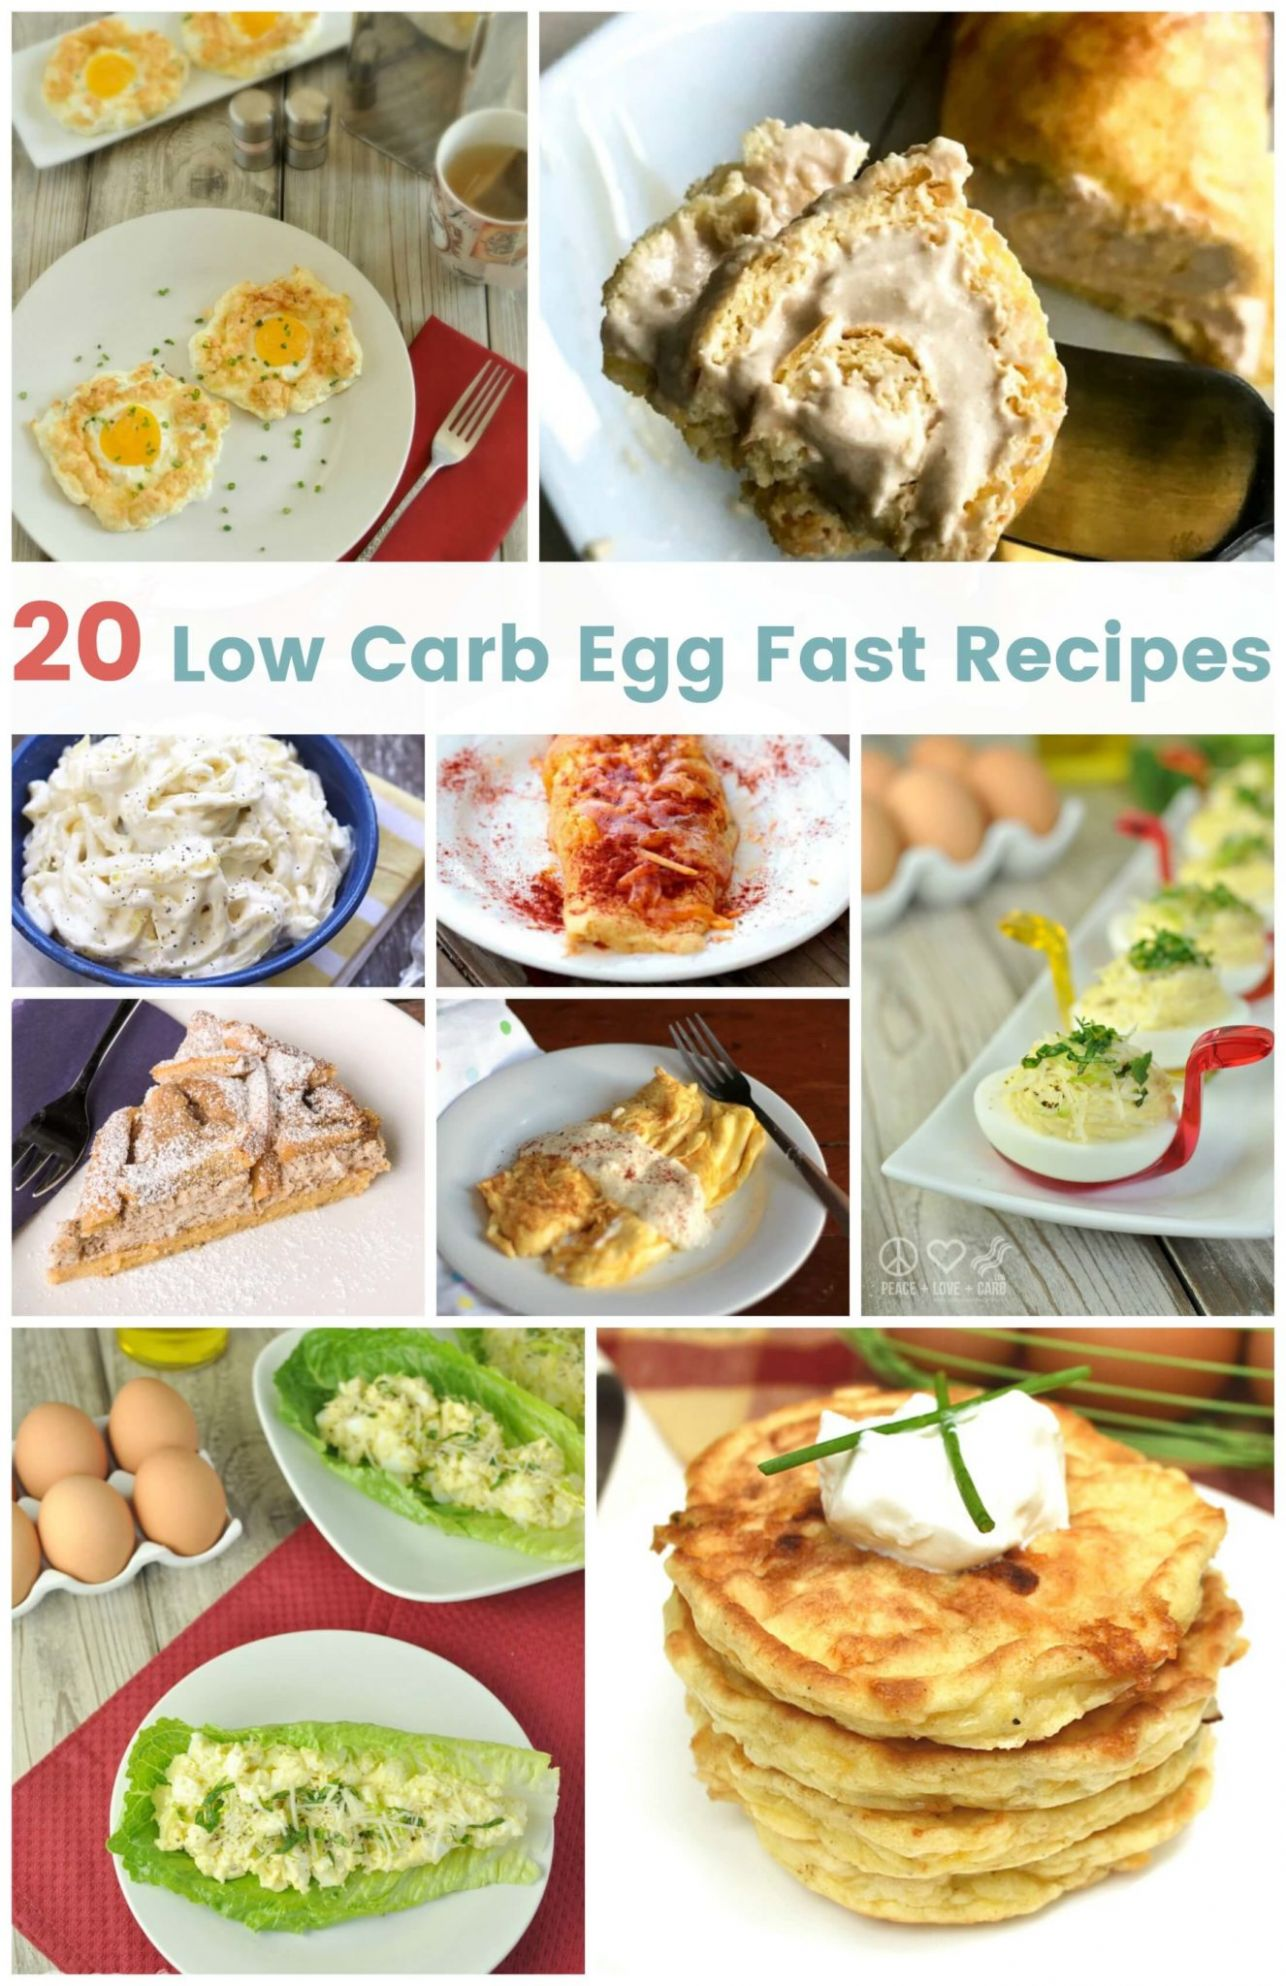 8 Low Carb Egg Fast Recipes | Peace Love and Low Carb